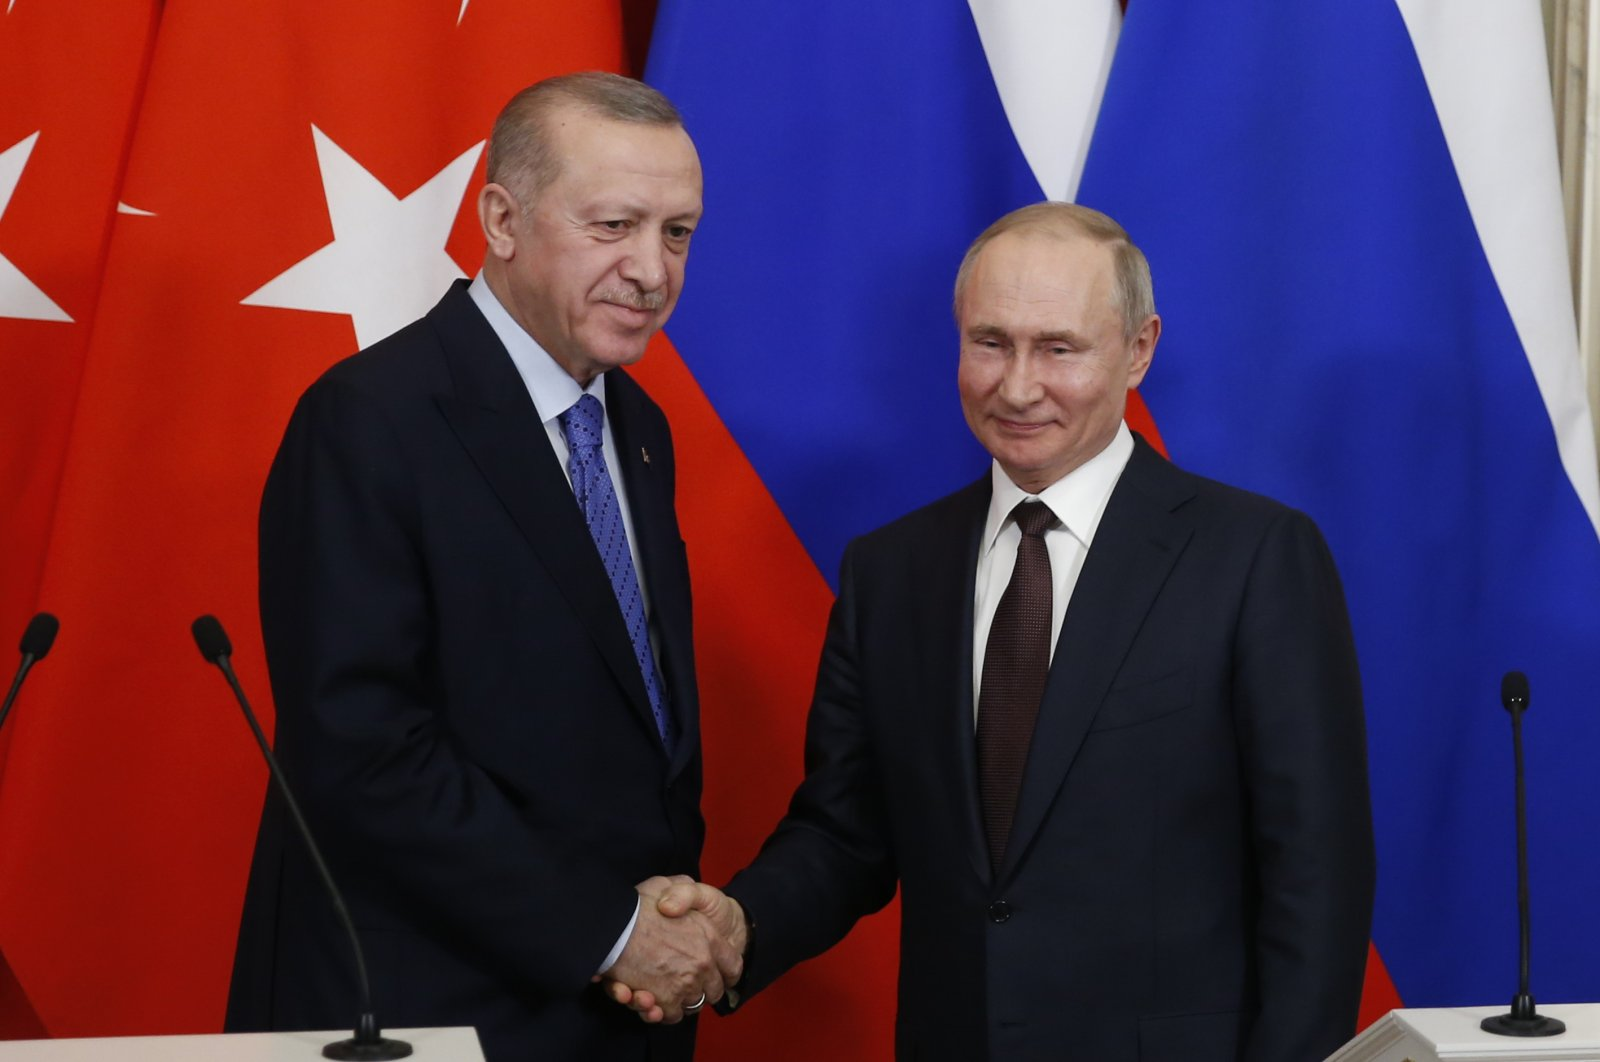 This file photo dated March 5, 2020 shows President Recep Tayyip Erdoğan (L) and his Russian counterpart Vladimir Putin shake hands following a summit on Idlib in Moscow. (AA Photo)